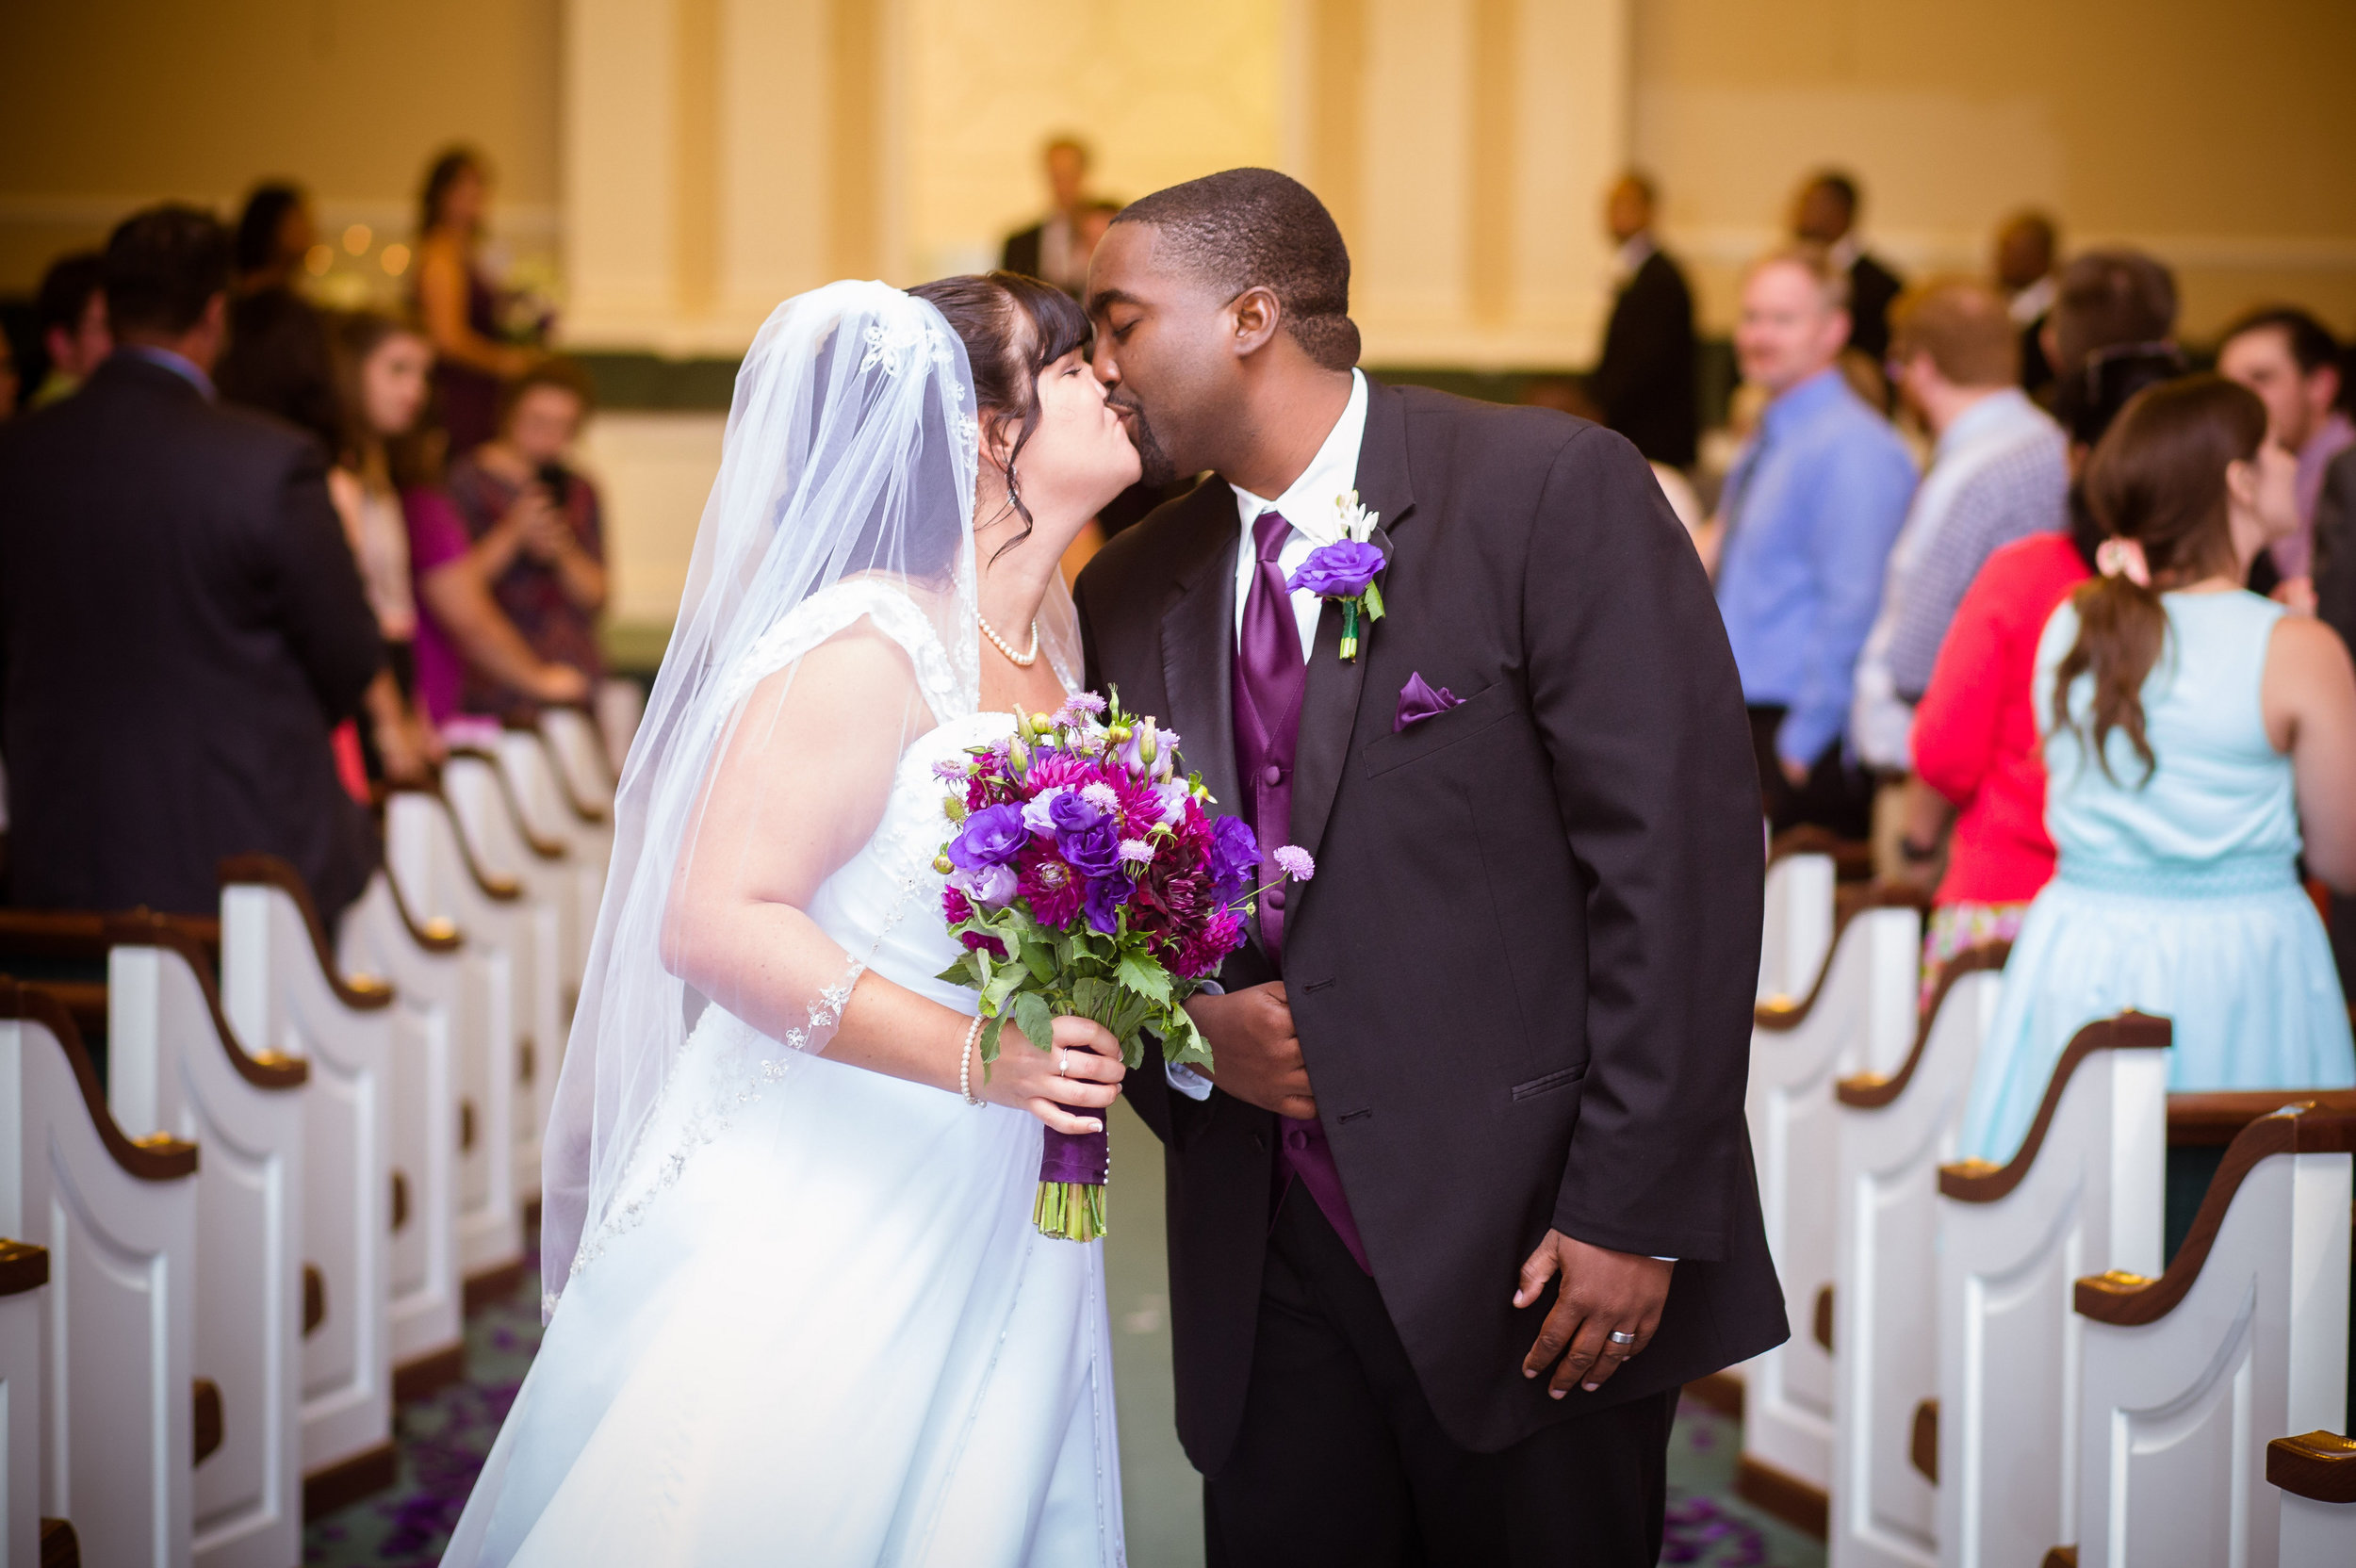 Toliver Wedding-All Wedding Images-0203.jpg